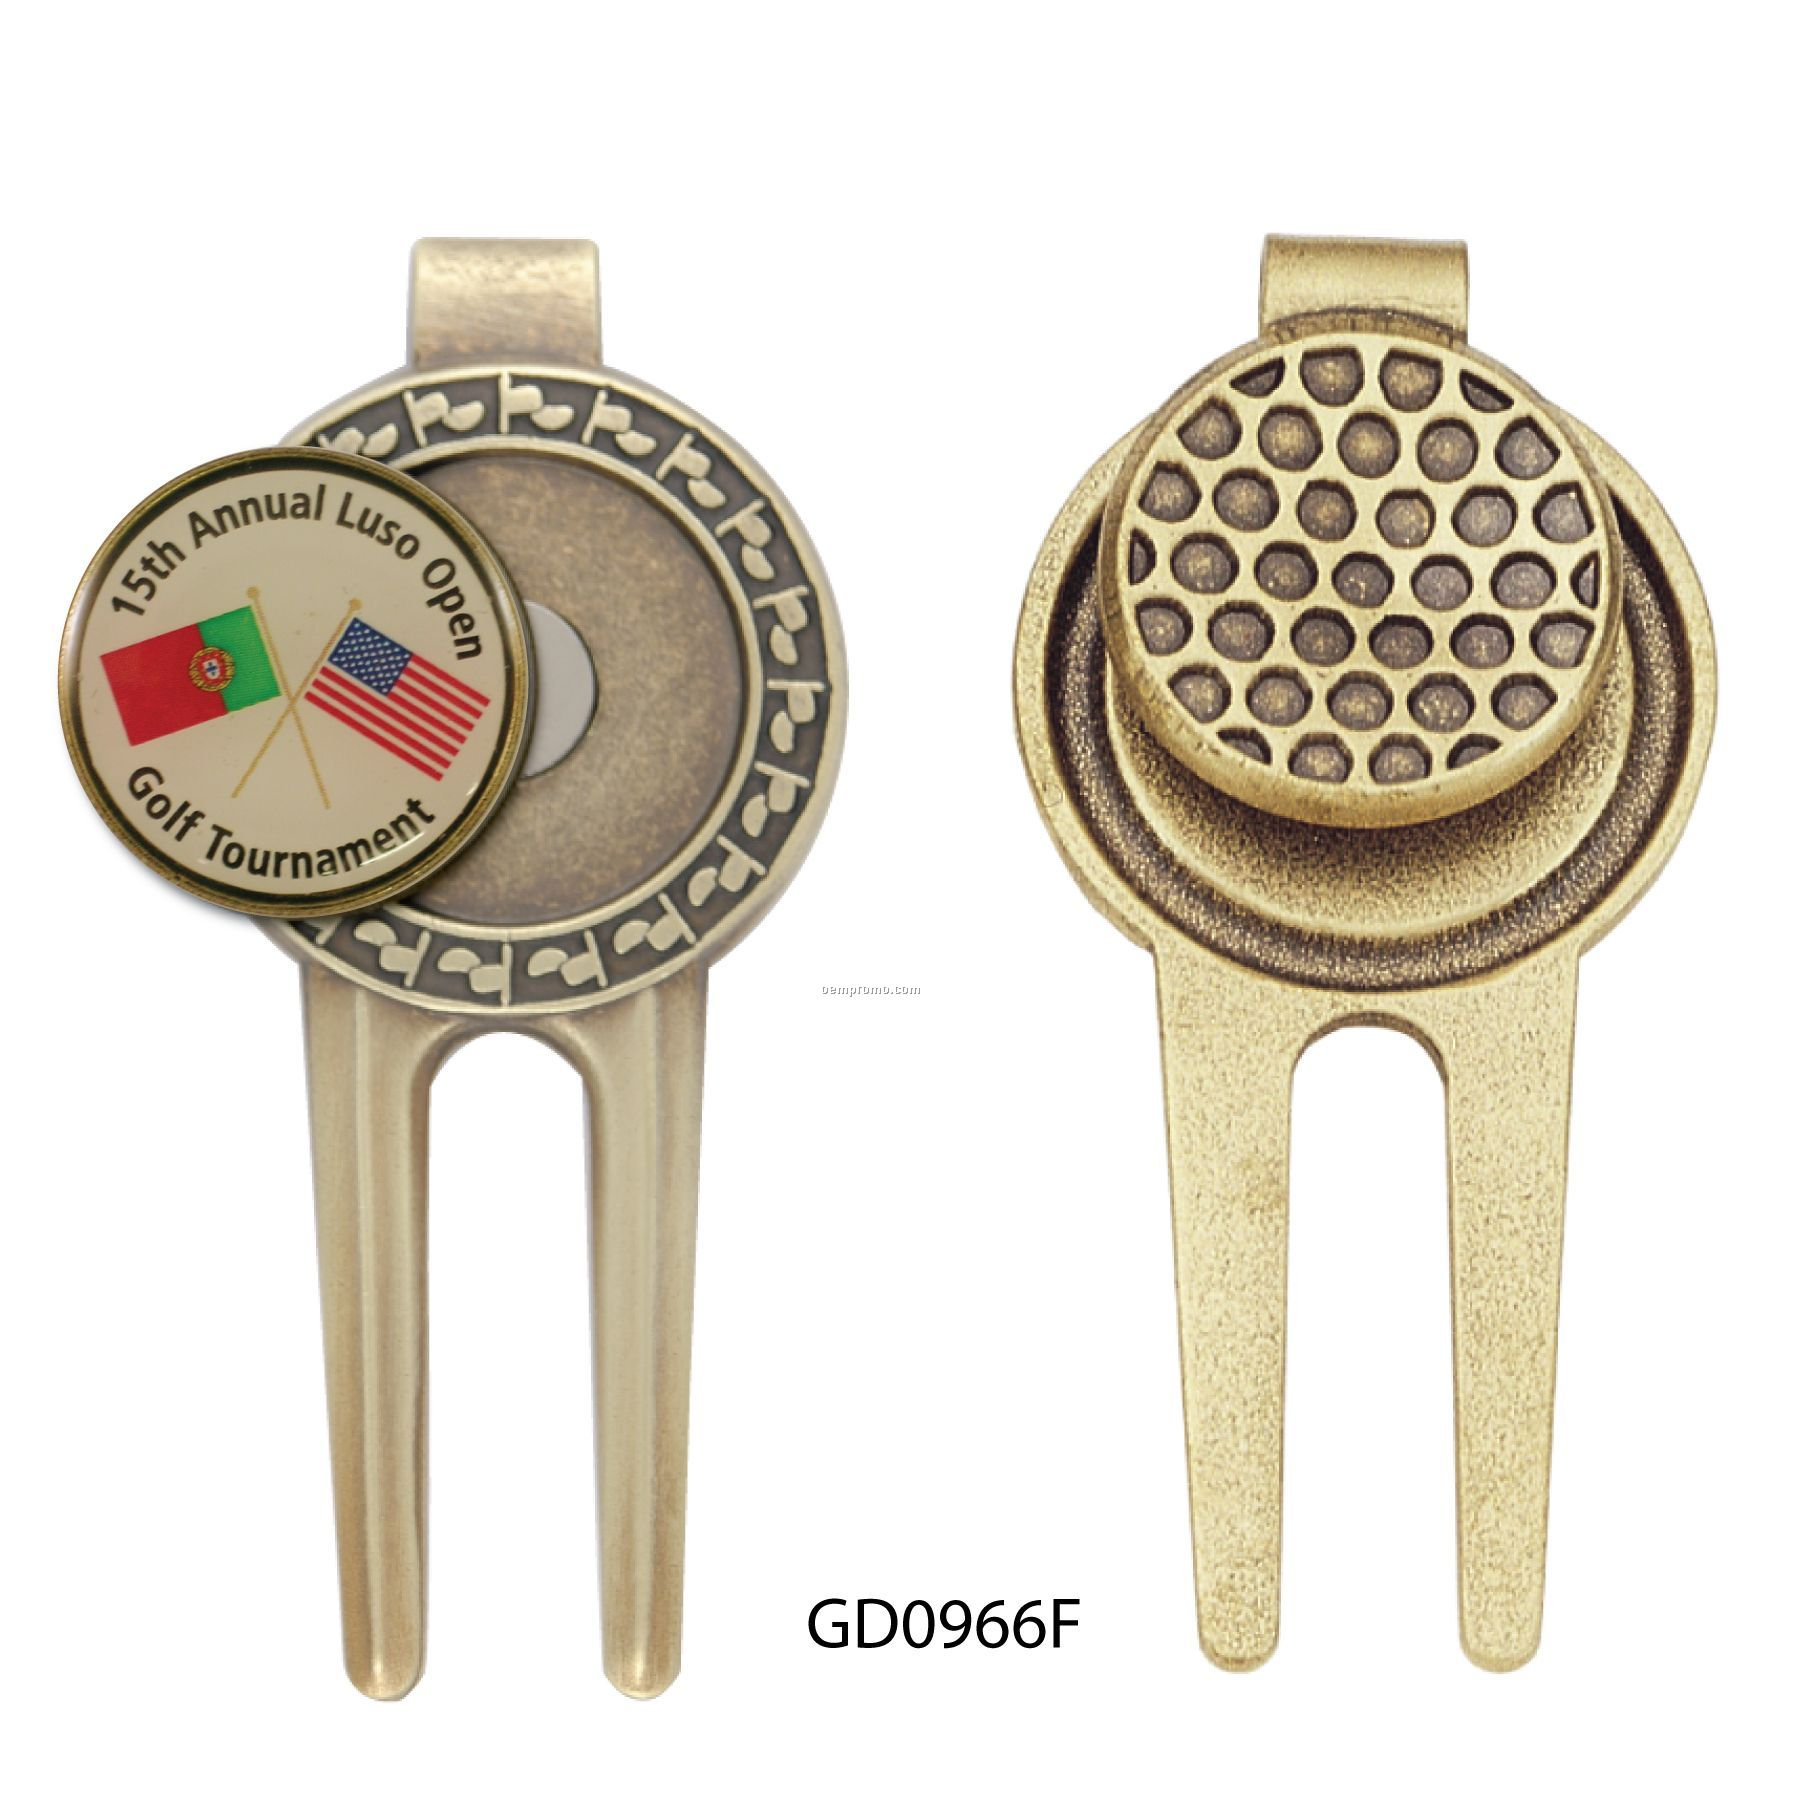 Solid Brass Divot Tool With Magnetic Ball Marker And Ball-shaped Money Clip